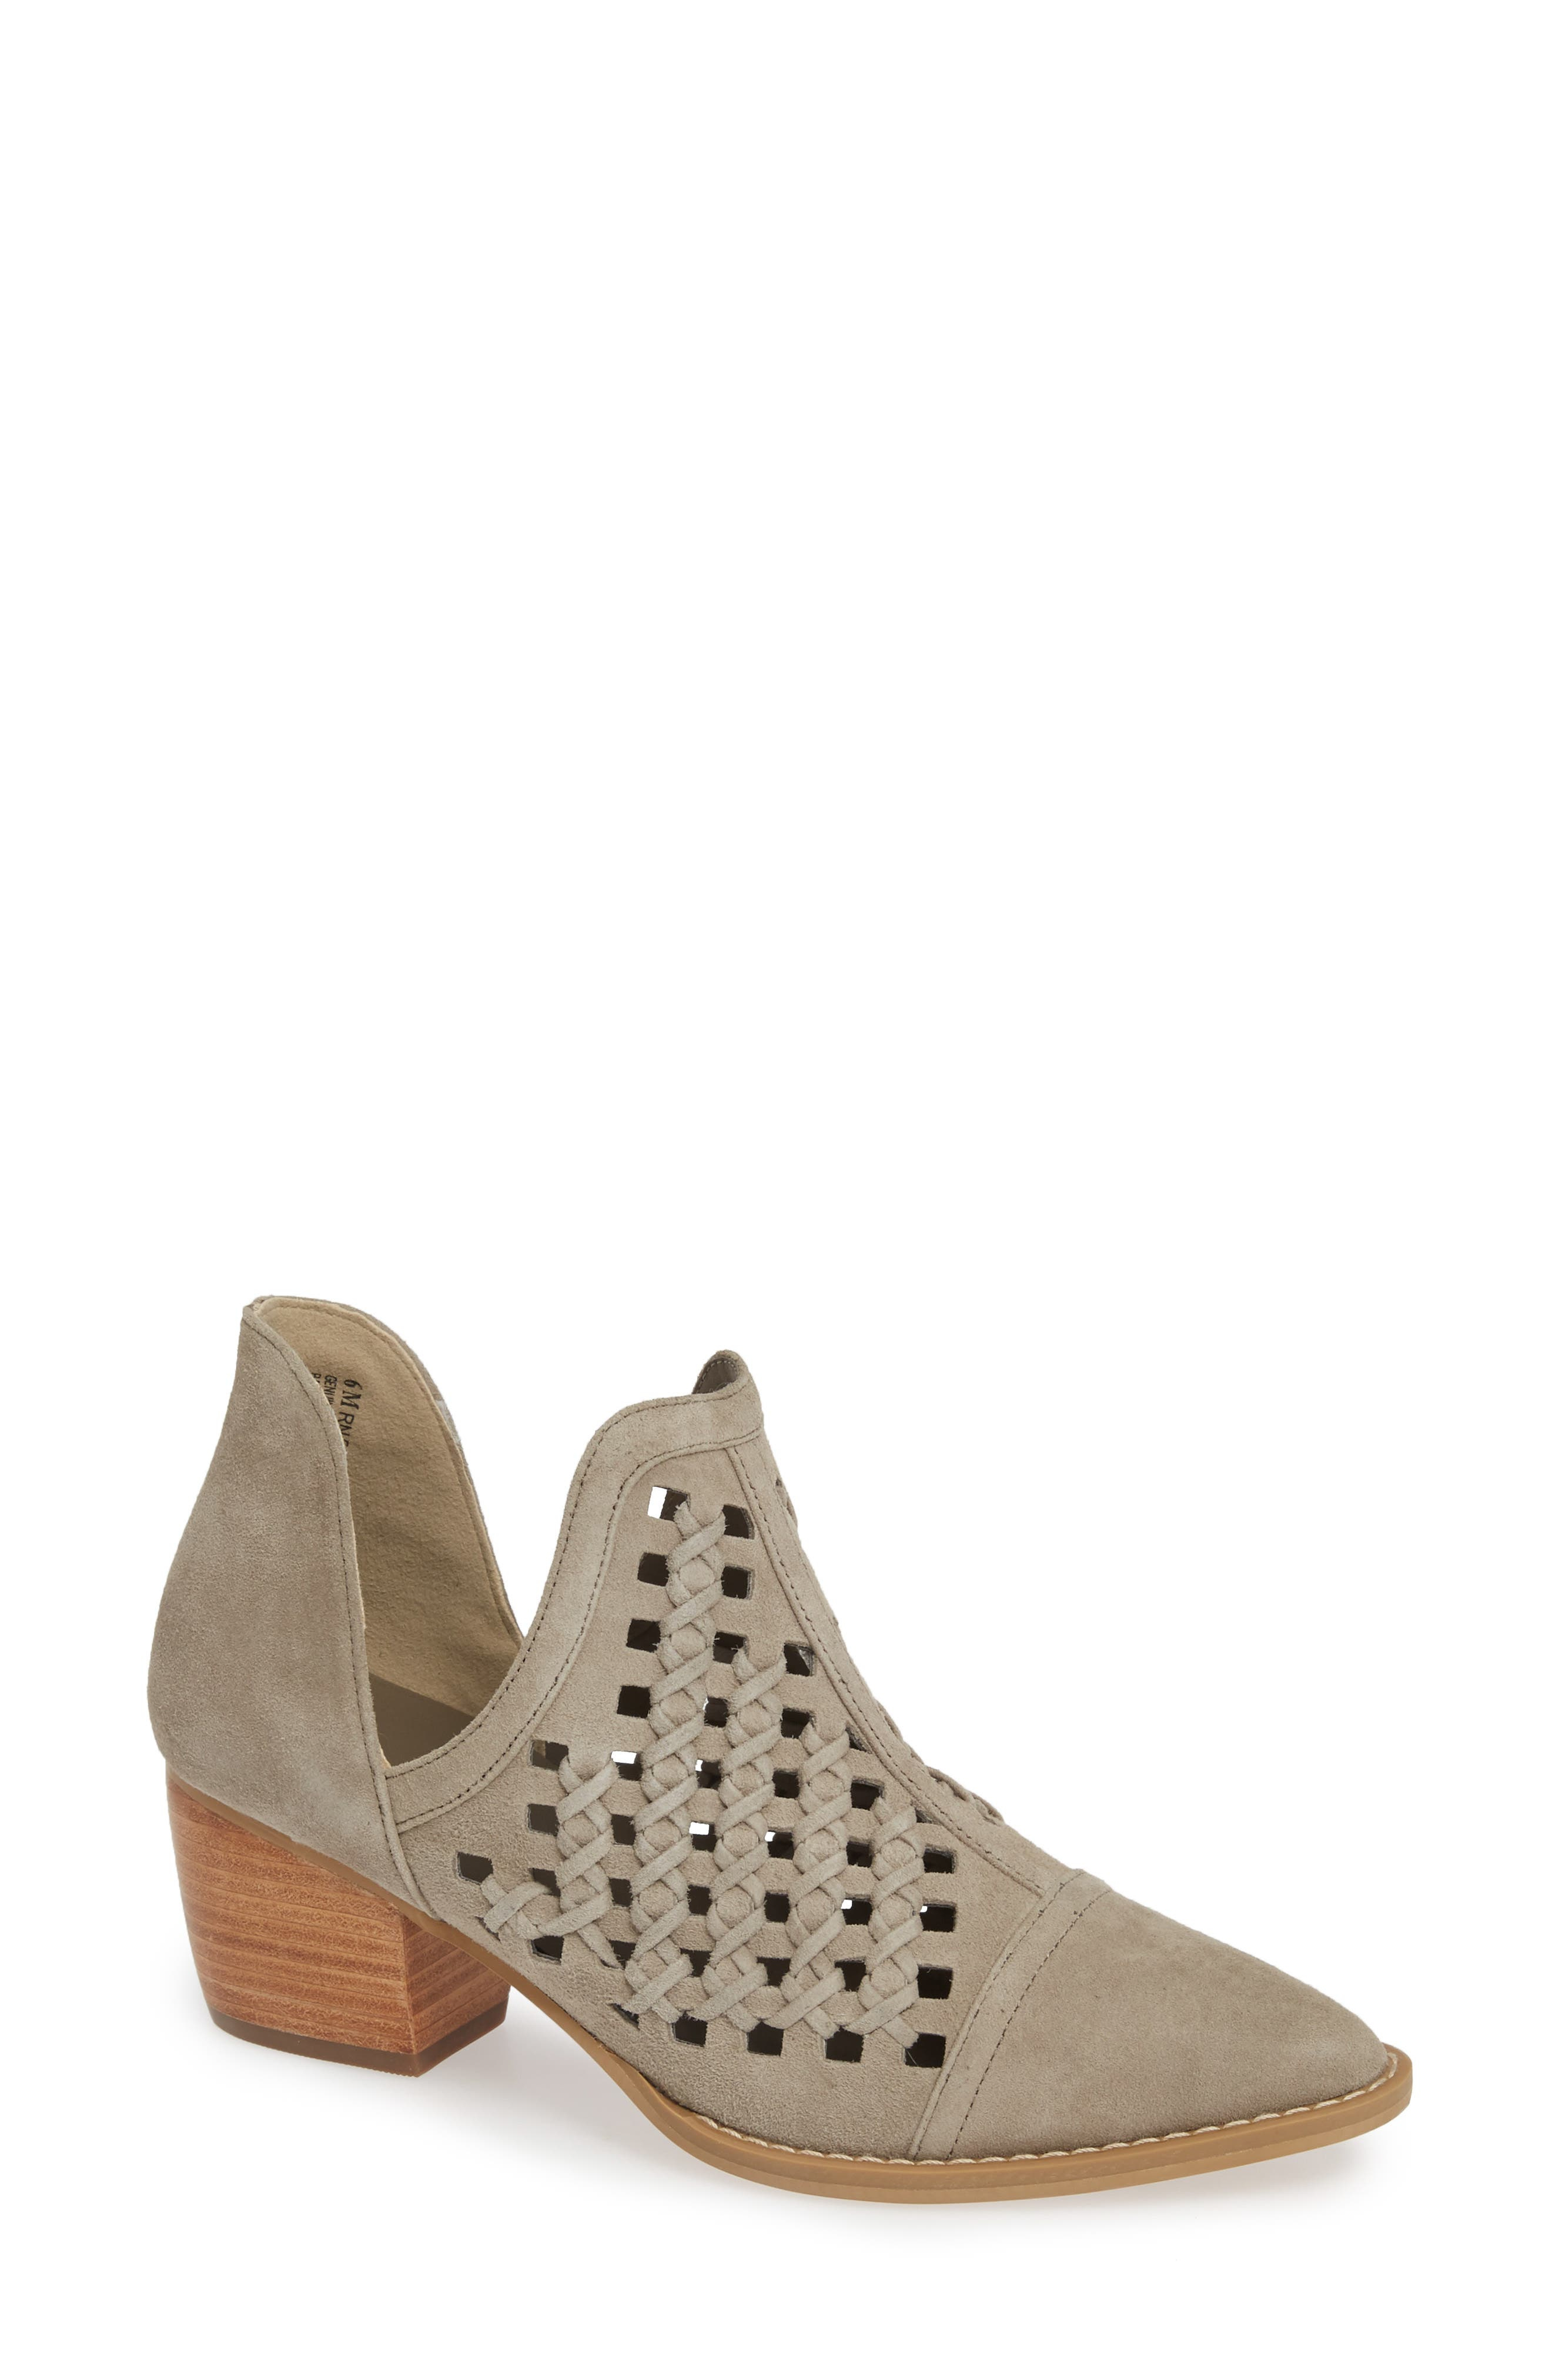 BP., Tate Bootie, Main thumbnail 1, color, TAUPE SUEDE